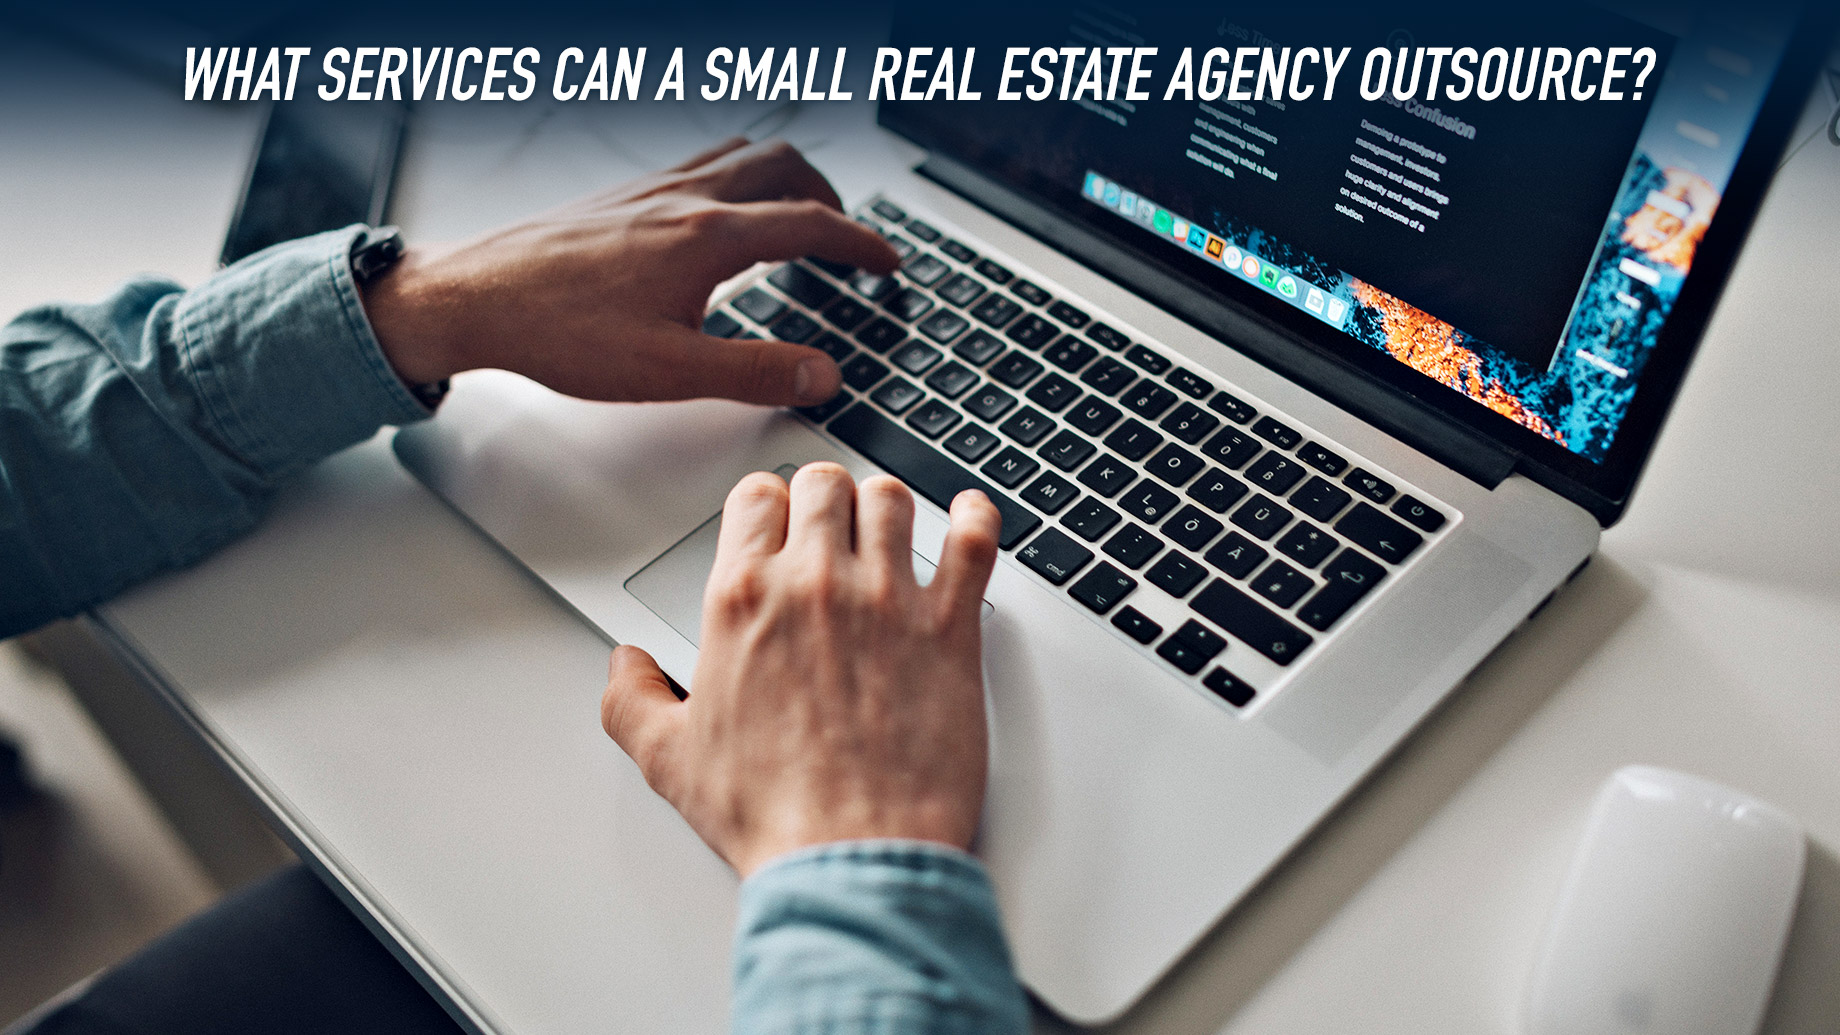 What Services Can A Small Real Estate Agency Outsource?